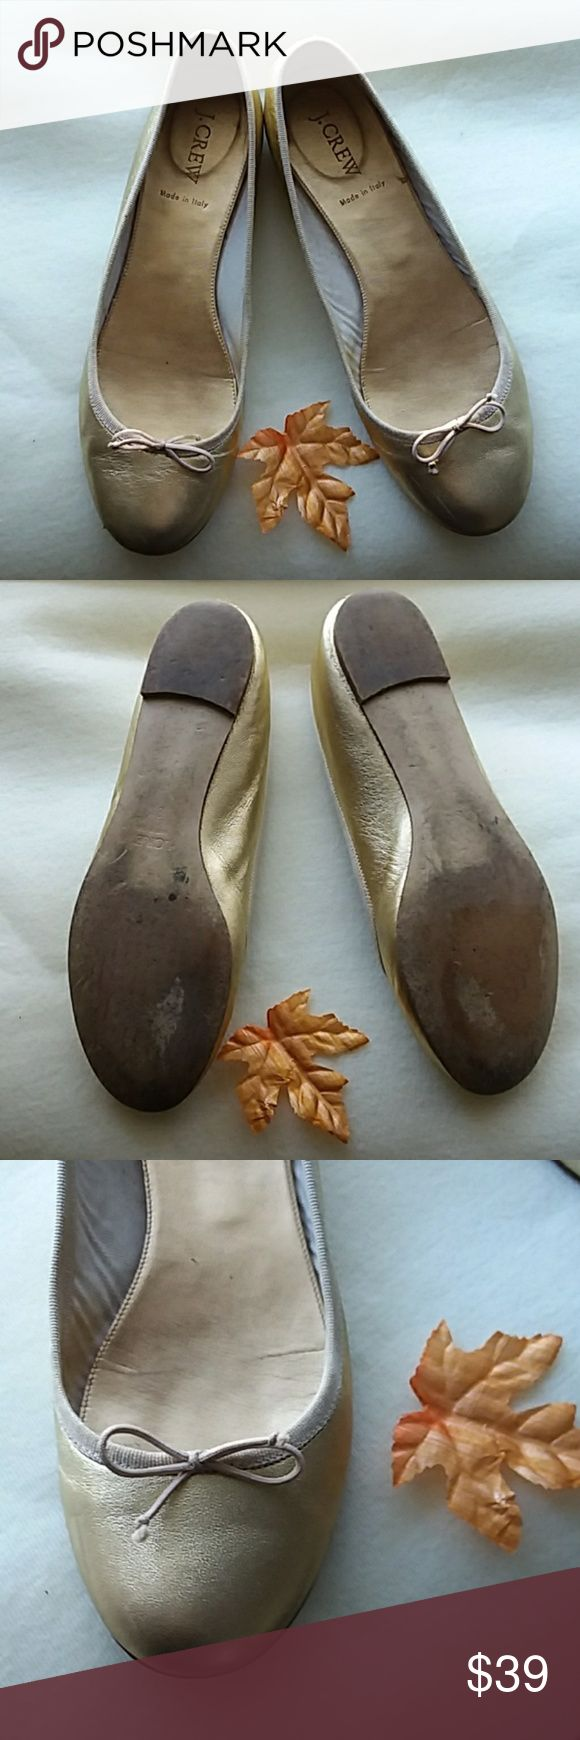 J Crew Gold Ballet shoes Soft and comfy with fine leather.  Made in Italy and ready for dress up or casual outfits.Size 8.5..great condition. J. Crew Shoes Flats & Loafers